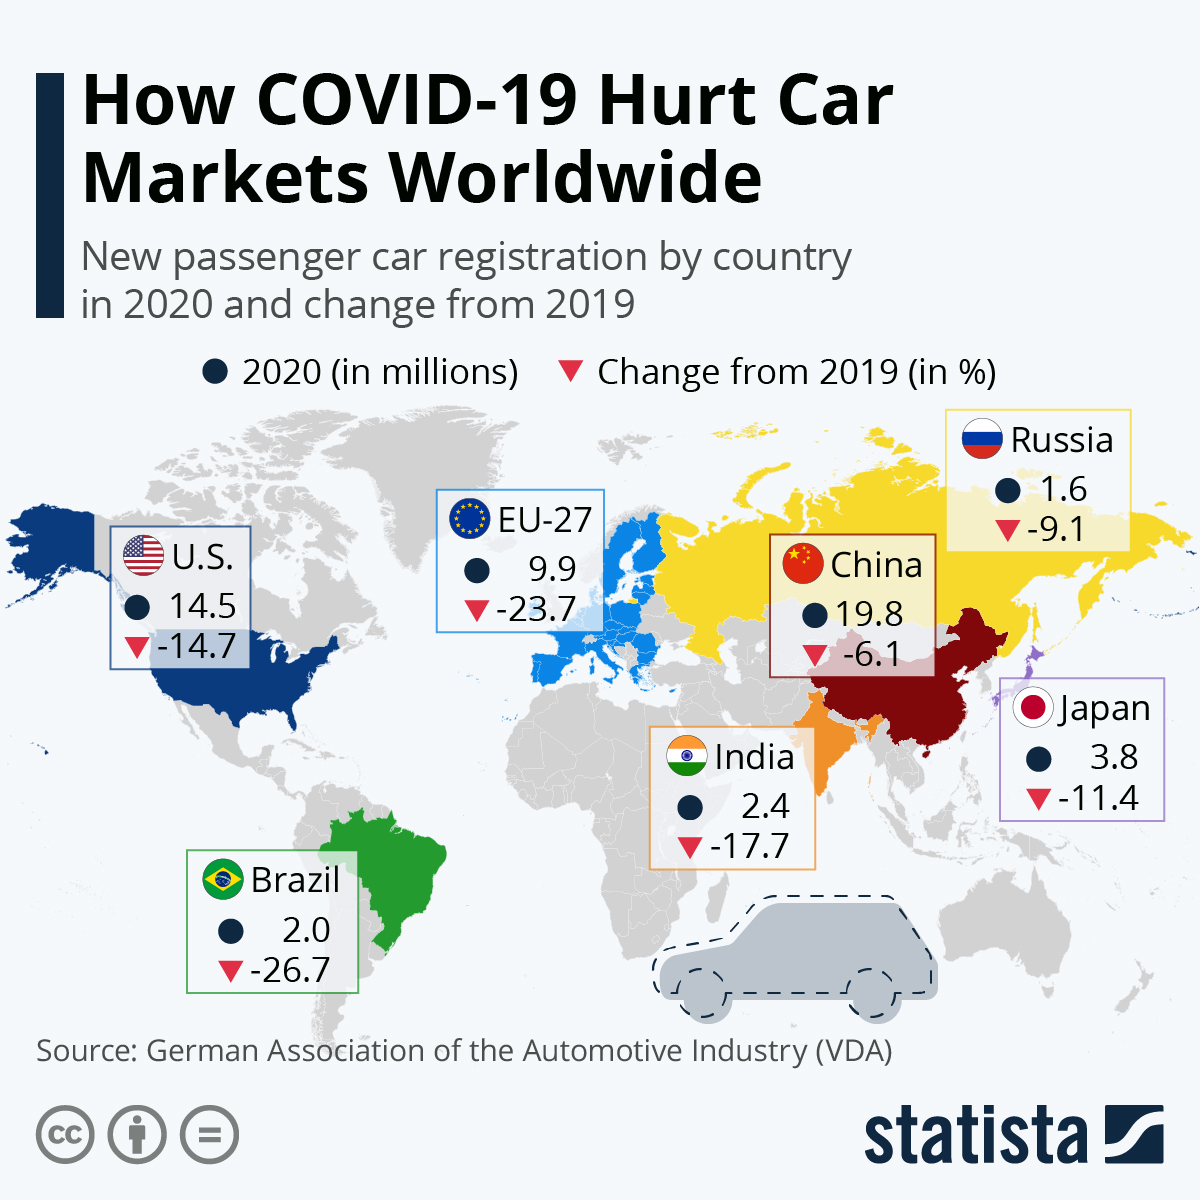 Covid-19 and the car marker worldwide